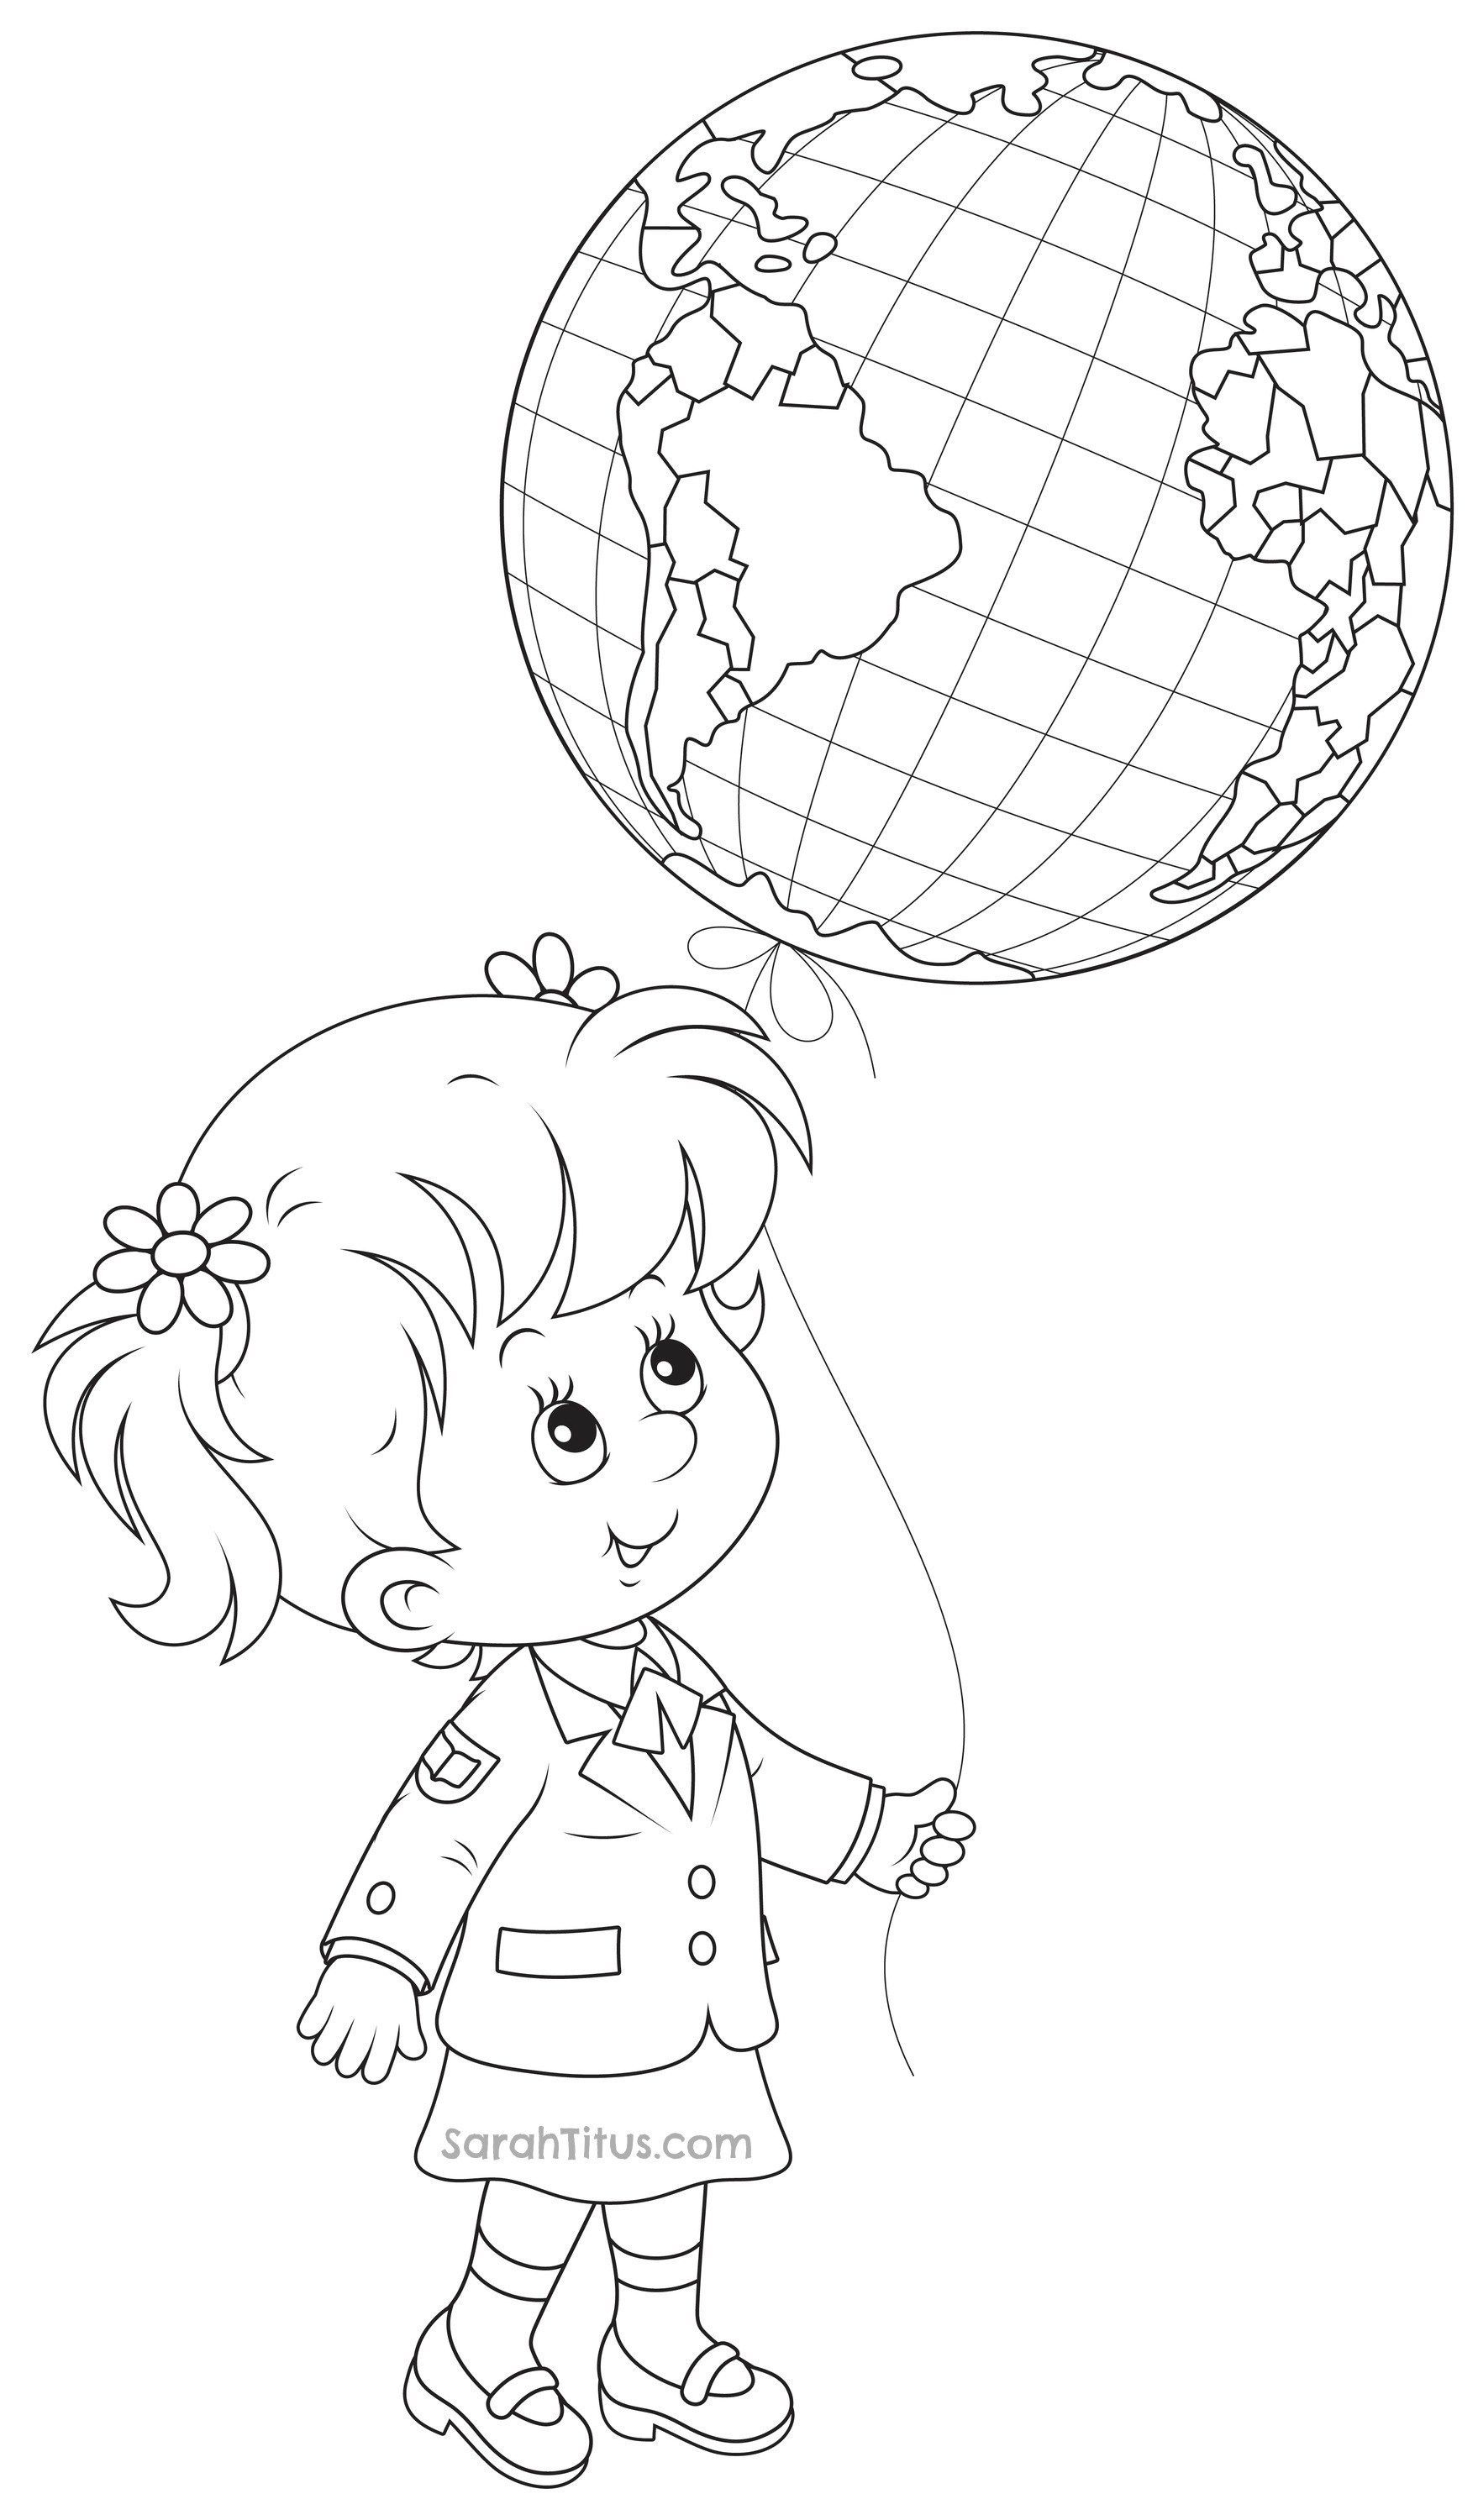 7 Best Coloring Pages Back to School Coloring Pages - Back to